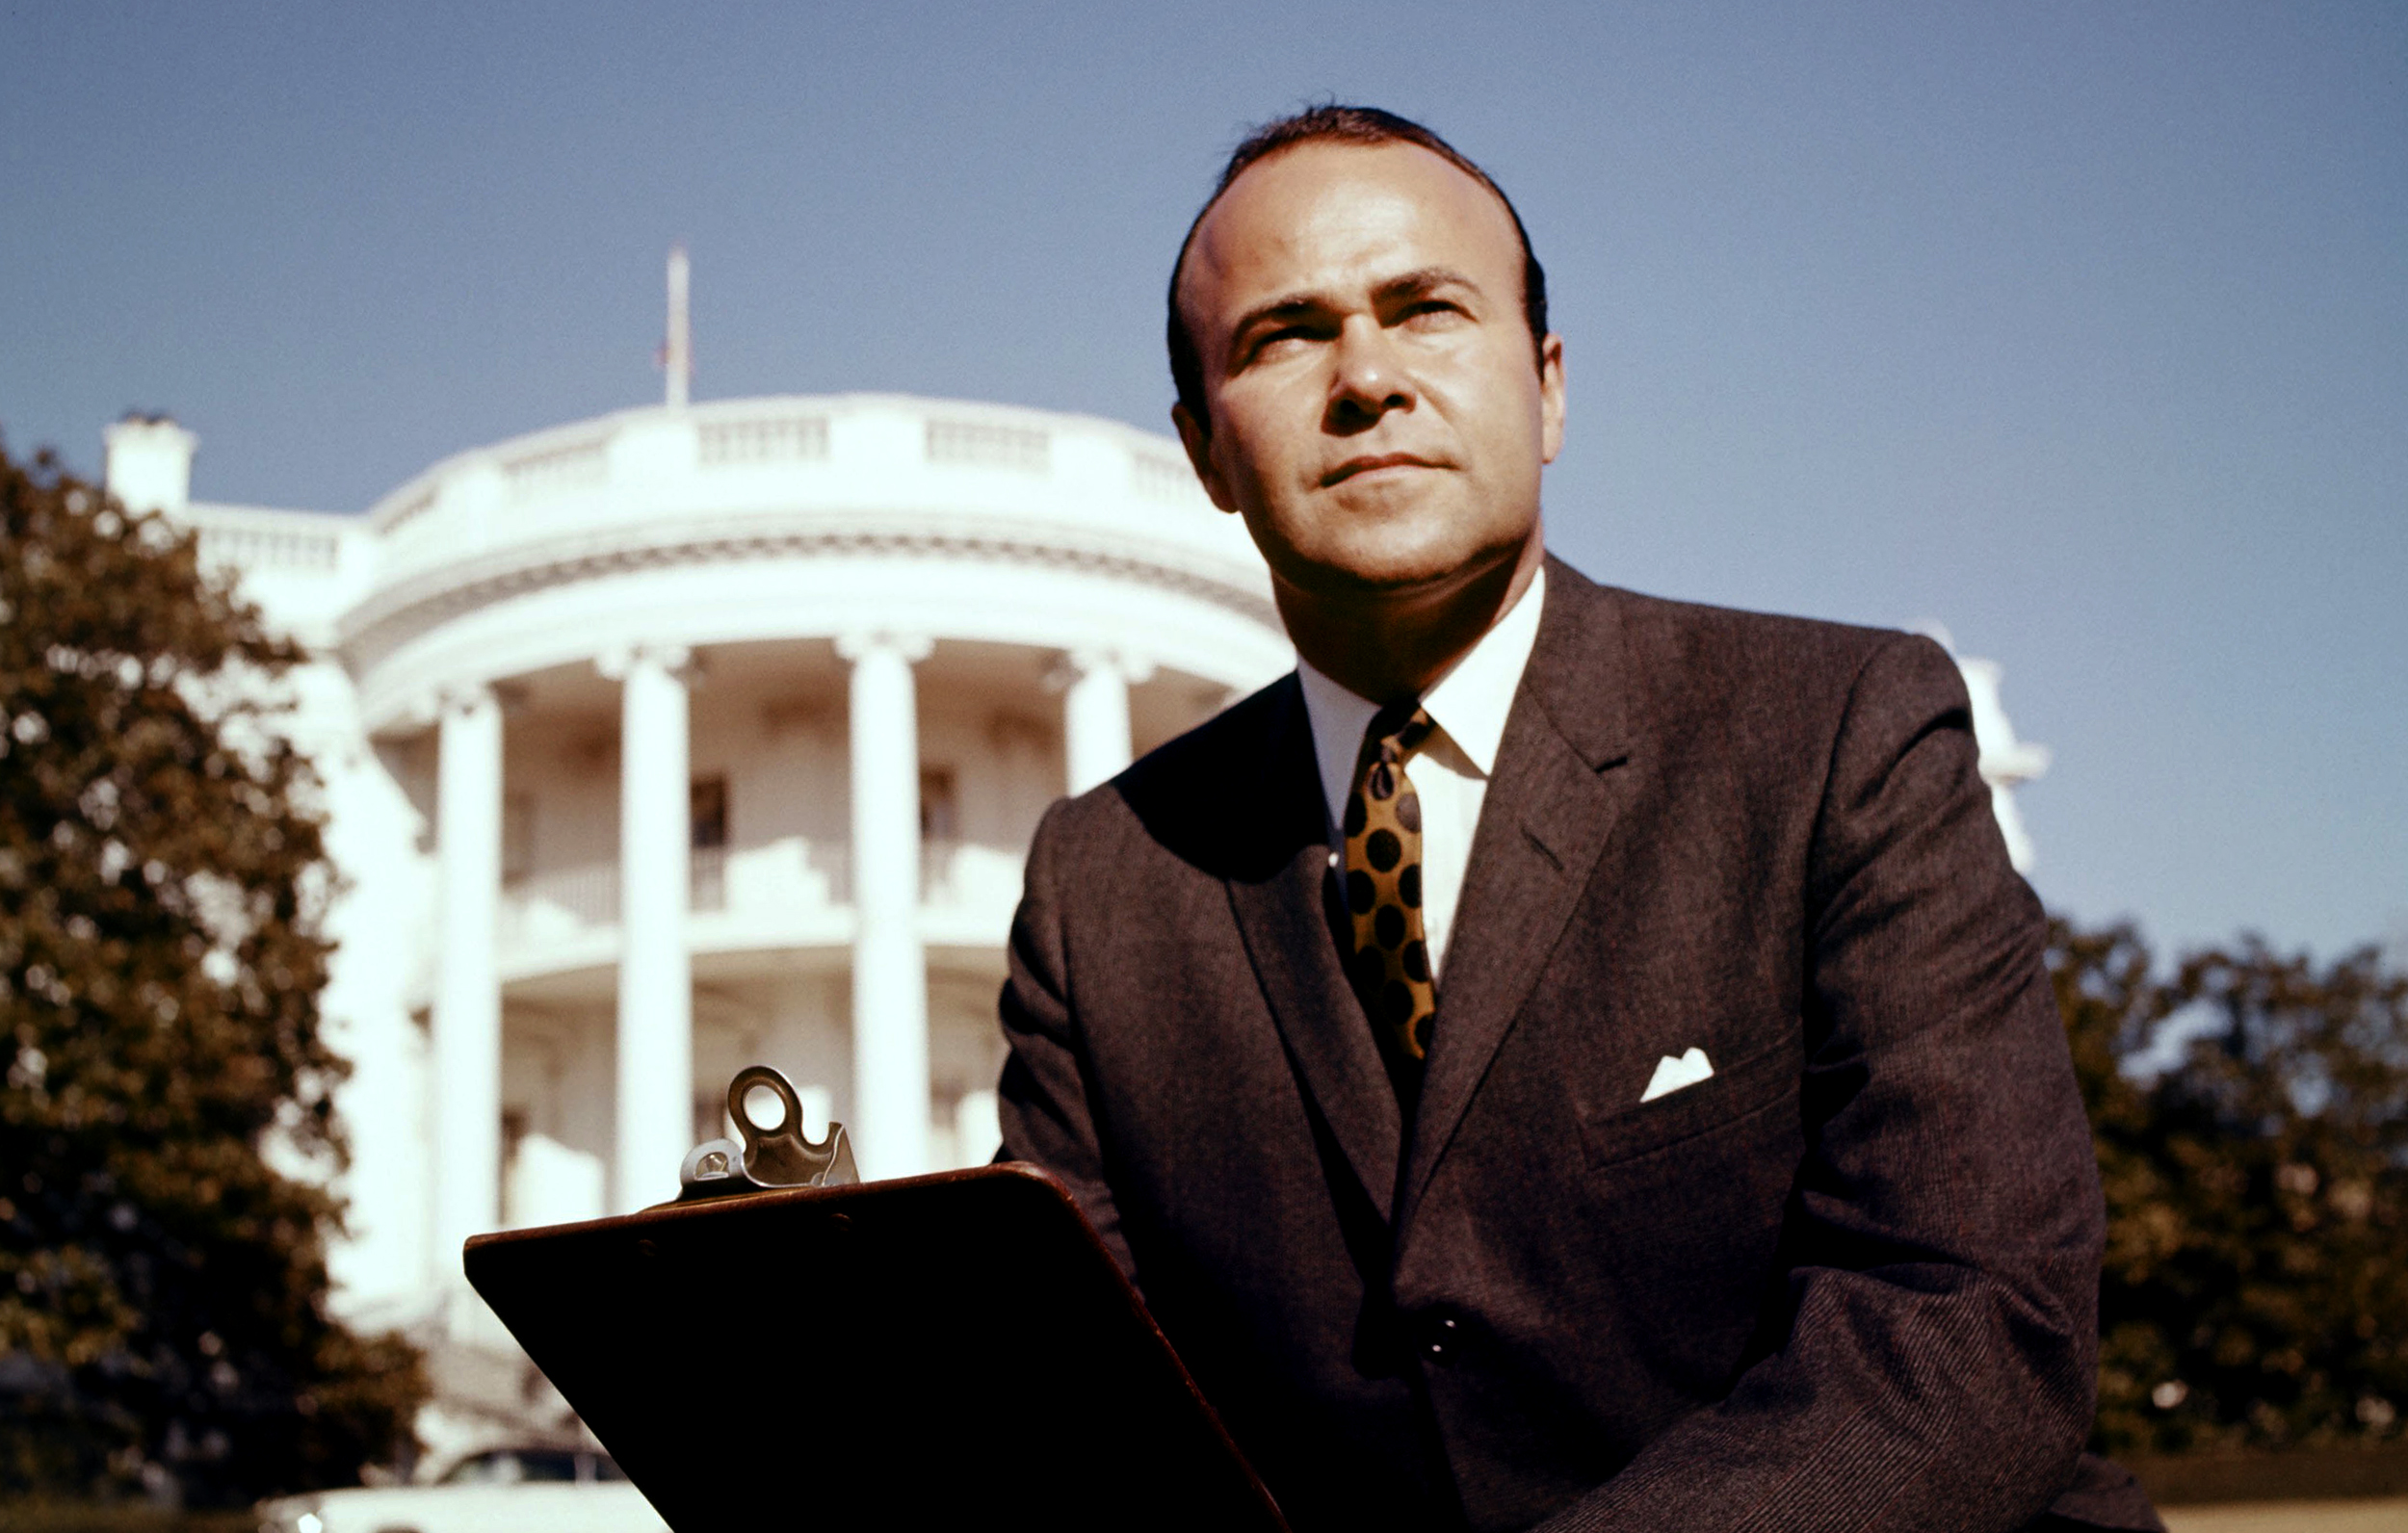 IMG SANDER VANOCUR, TV Newsman Who Covered Kennedy